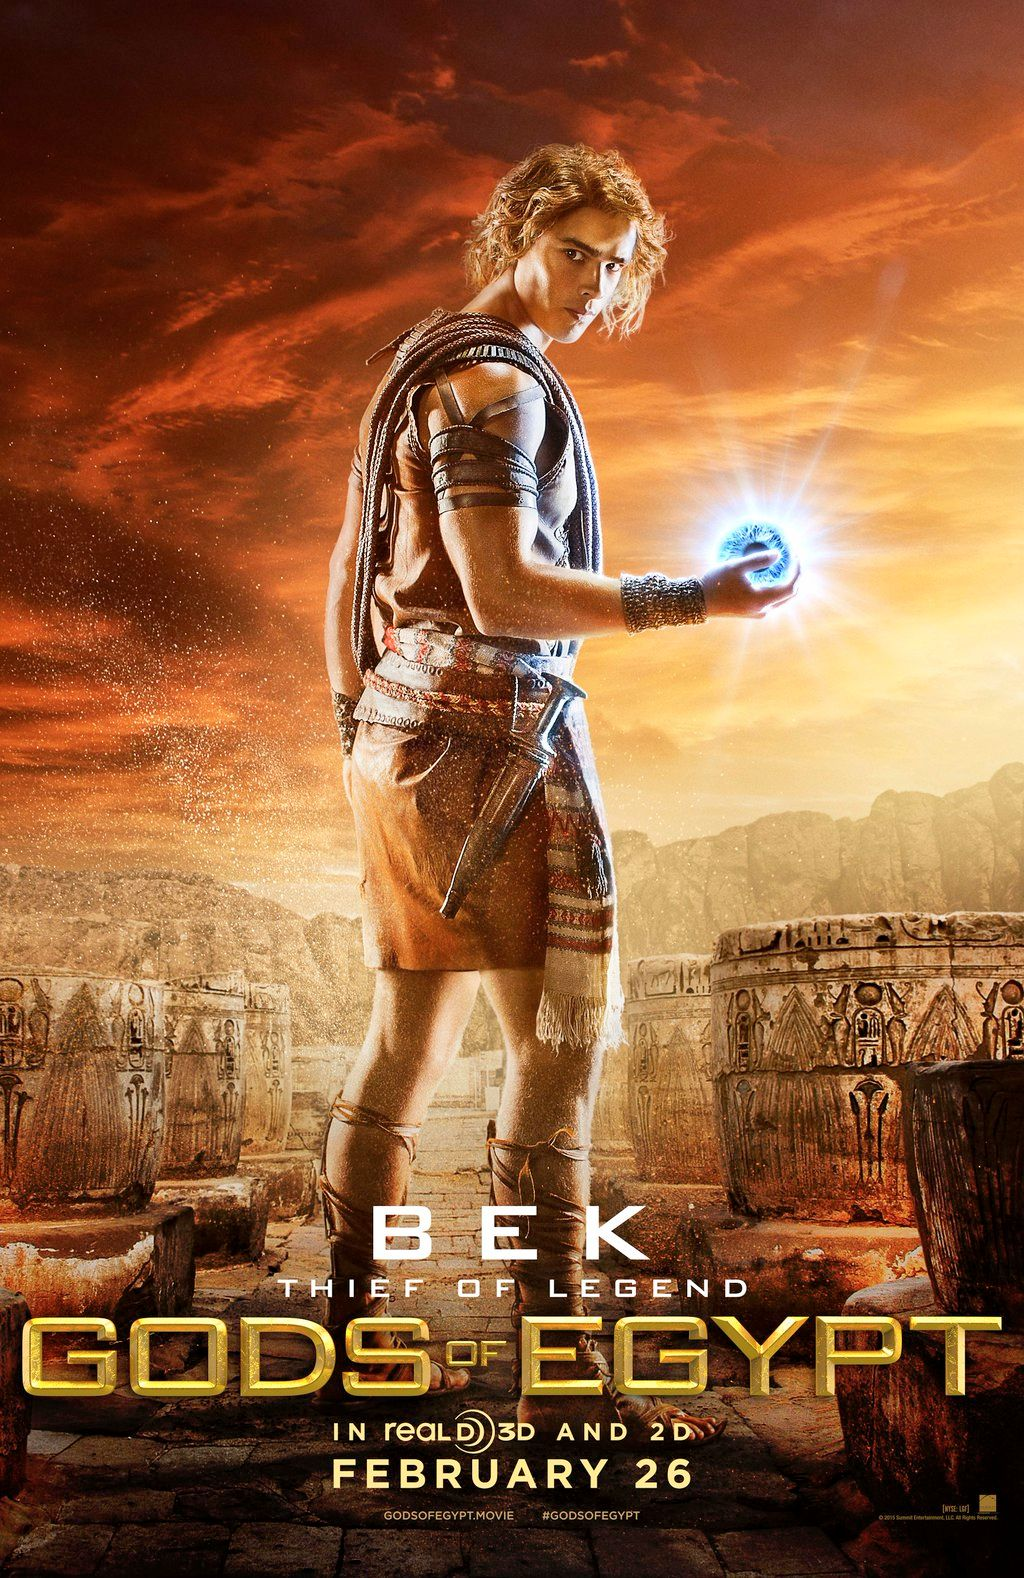 Gods of Egypt Posters Feature Gerard Butler and Elodie Yung | Collider